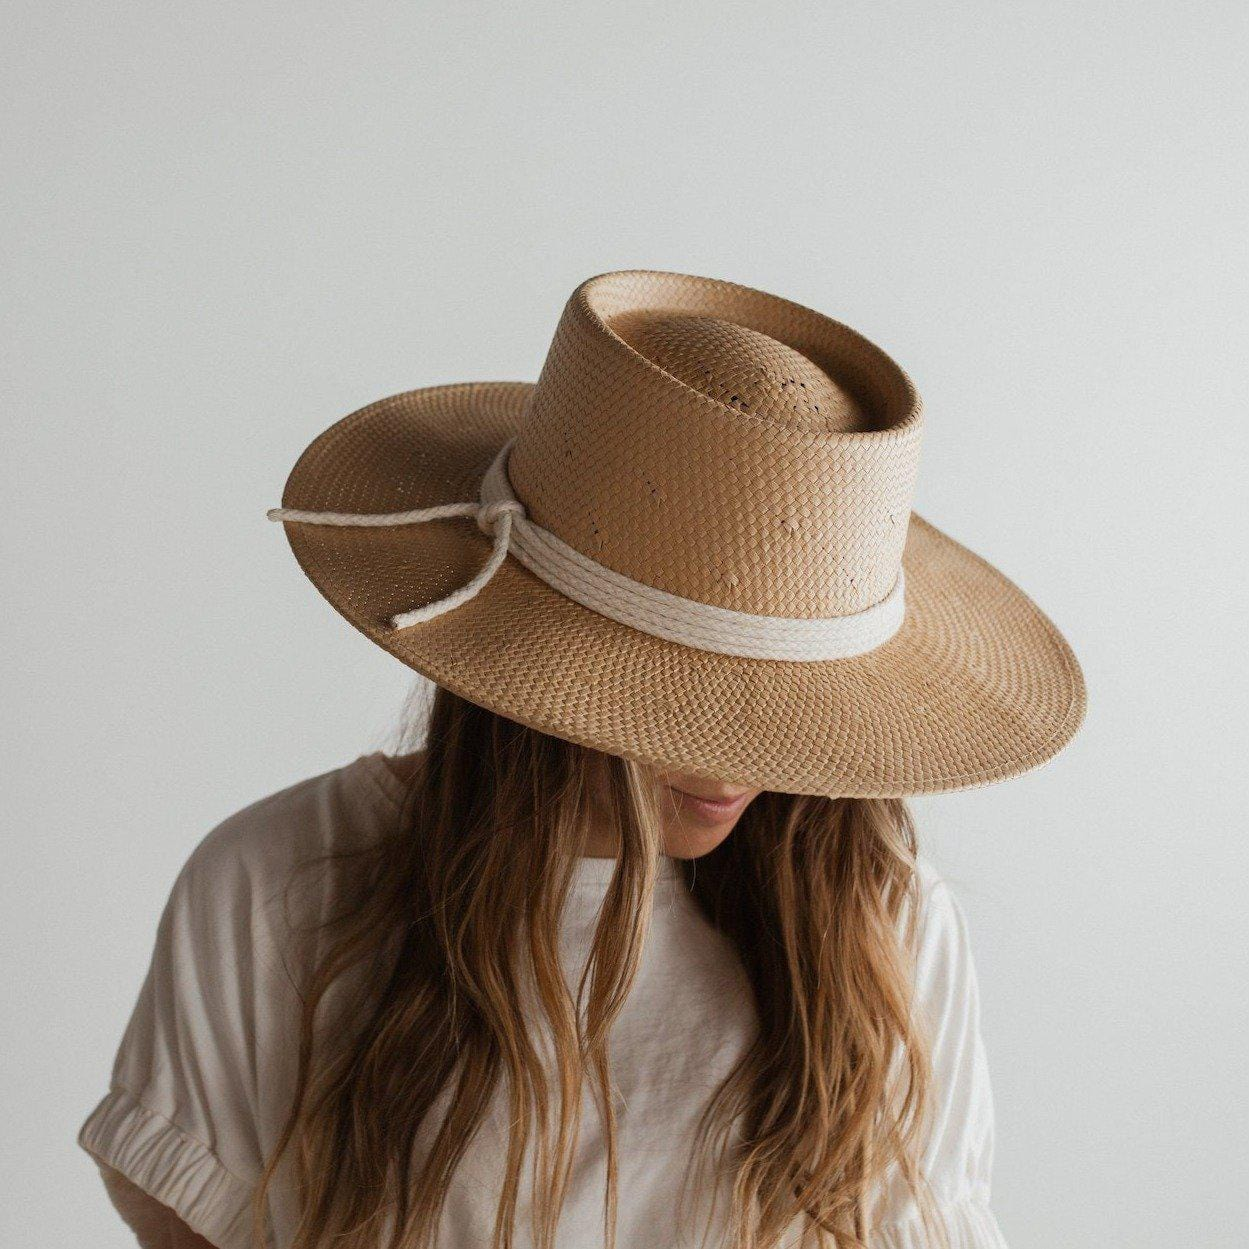 GIGI PIP Hats for Women- Bre Straw Pork Pie - Natural-Straw Hats